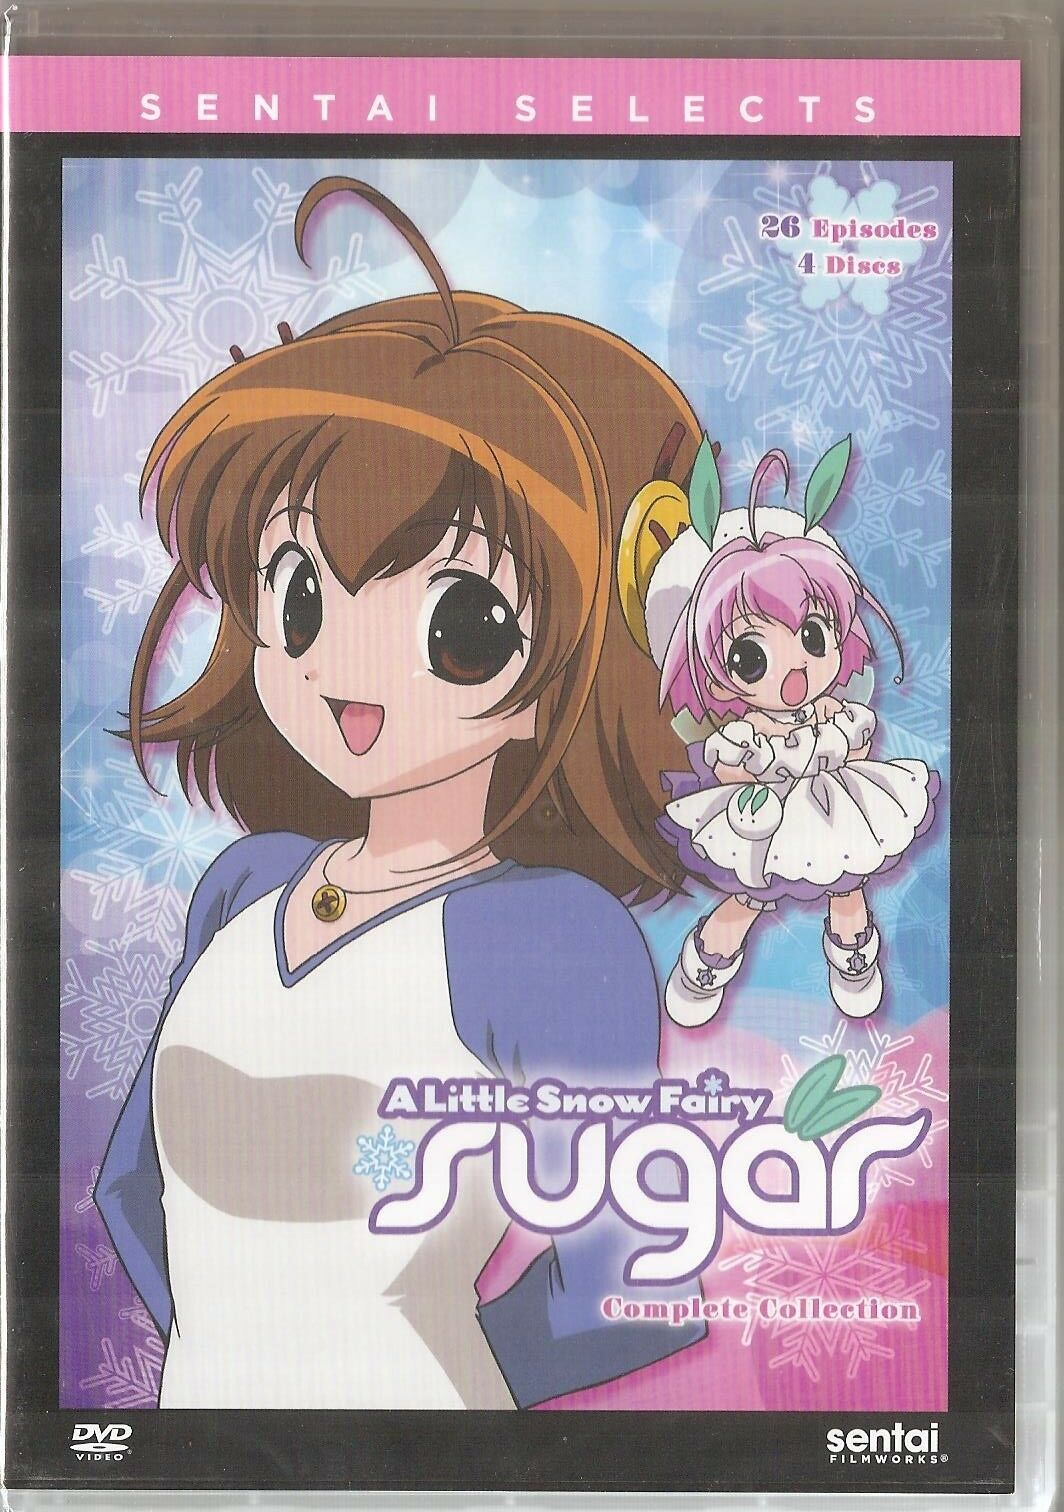 A Little Snow Fairy Sugar Complete Anime Collection DVD Sentai Selects 4-Disc